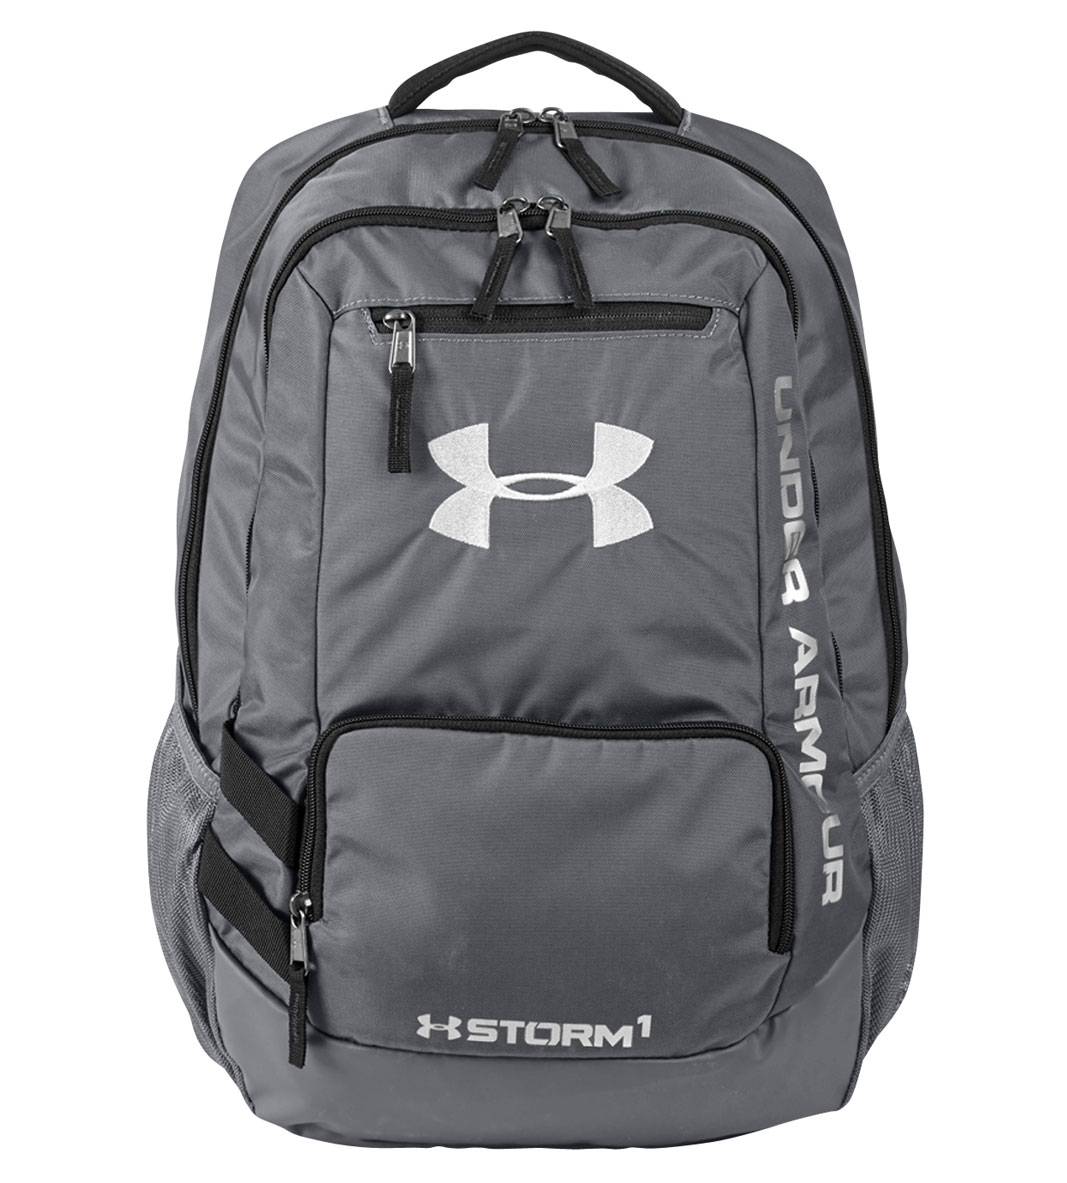 Customized Under Armour Backpack